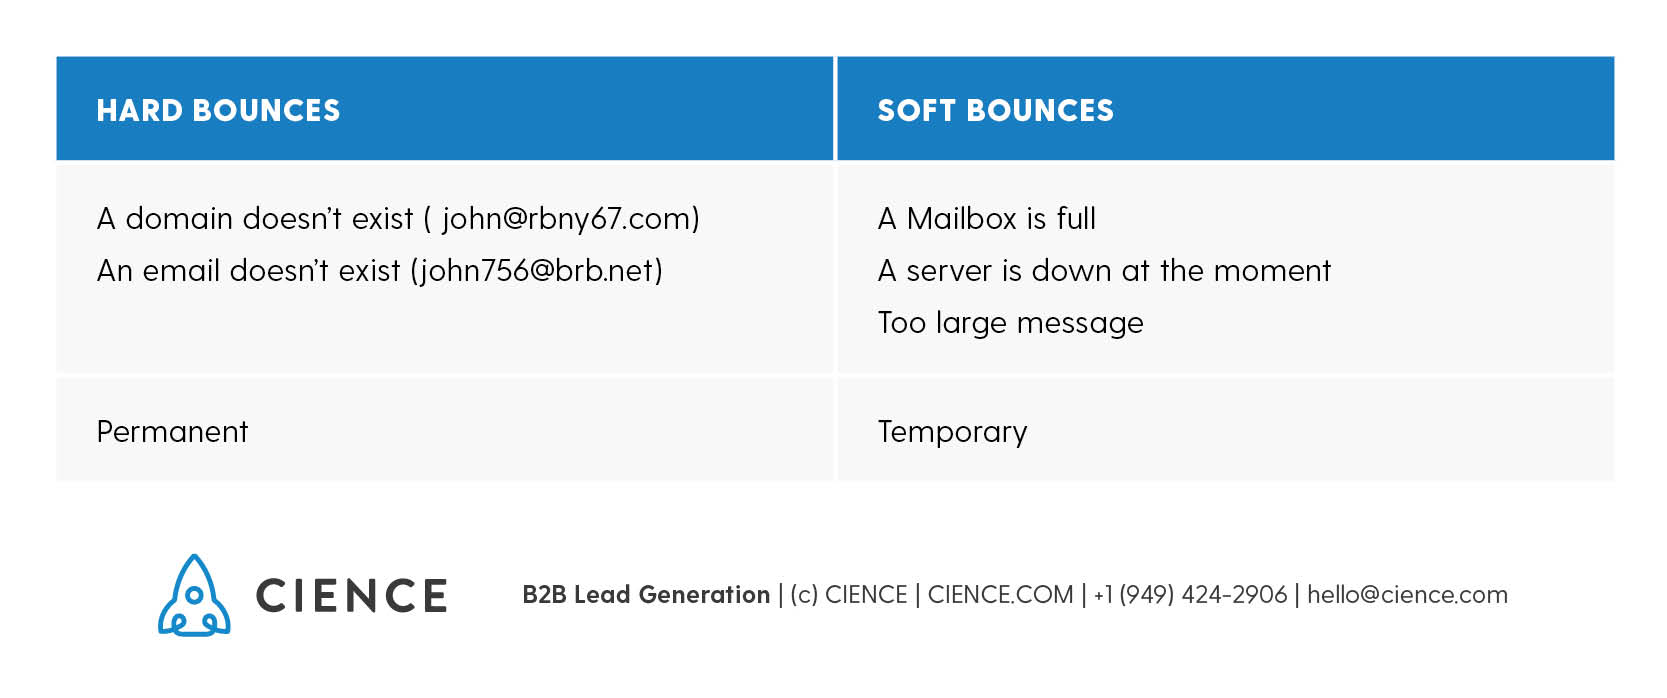 Email bounce rate: what's the difference between soft bounces and hard bounces?